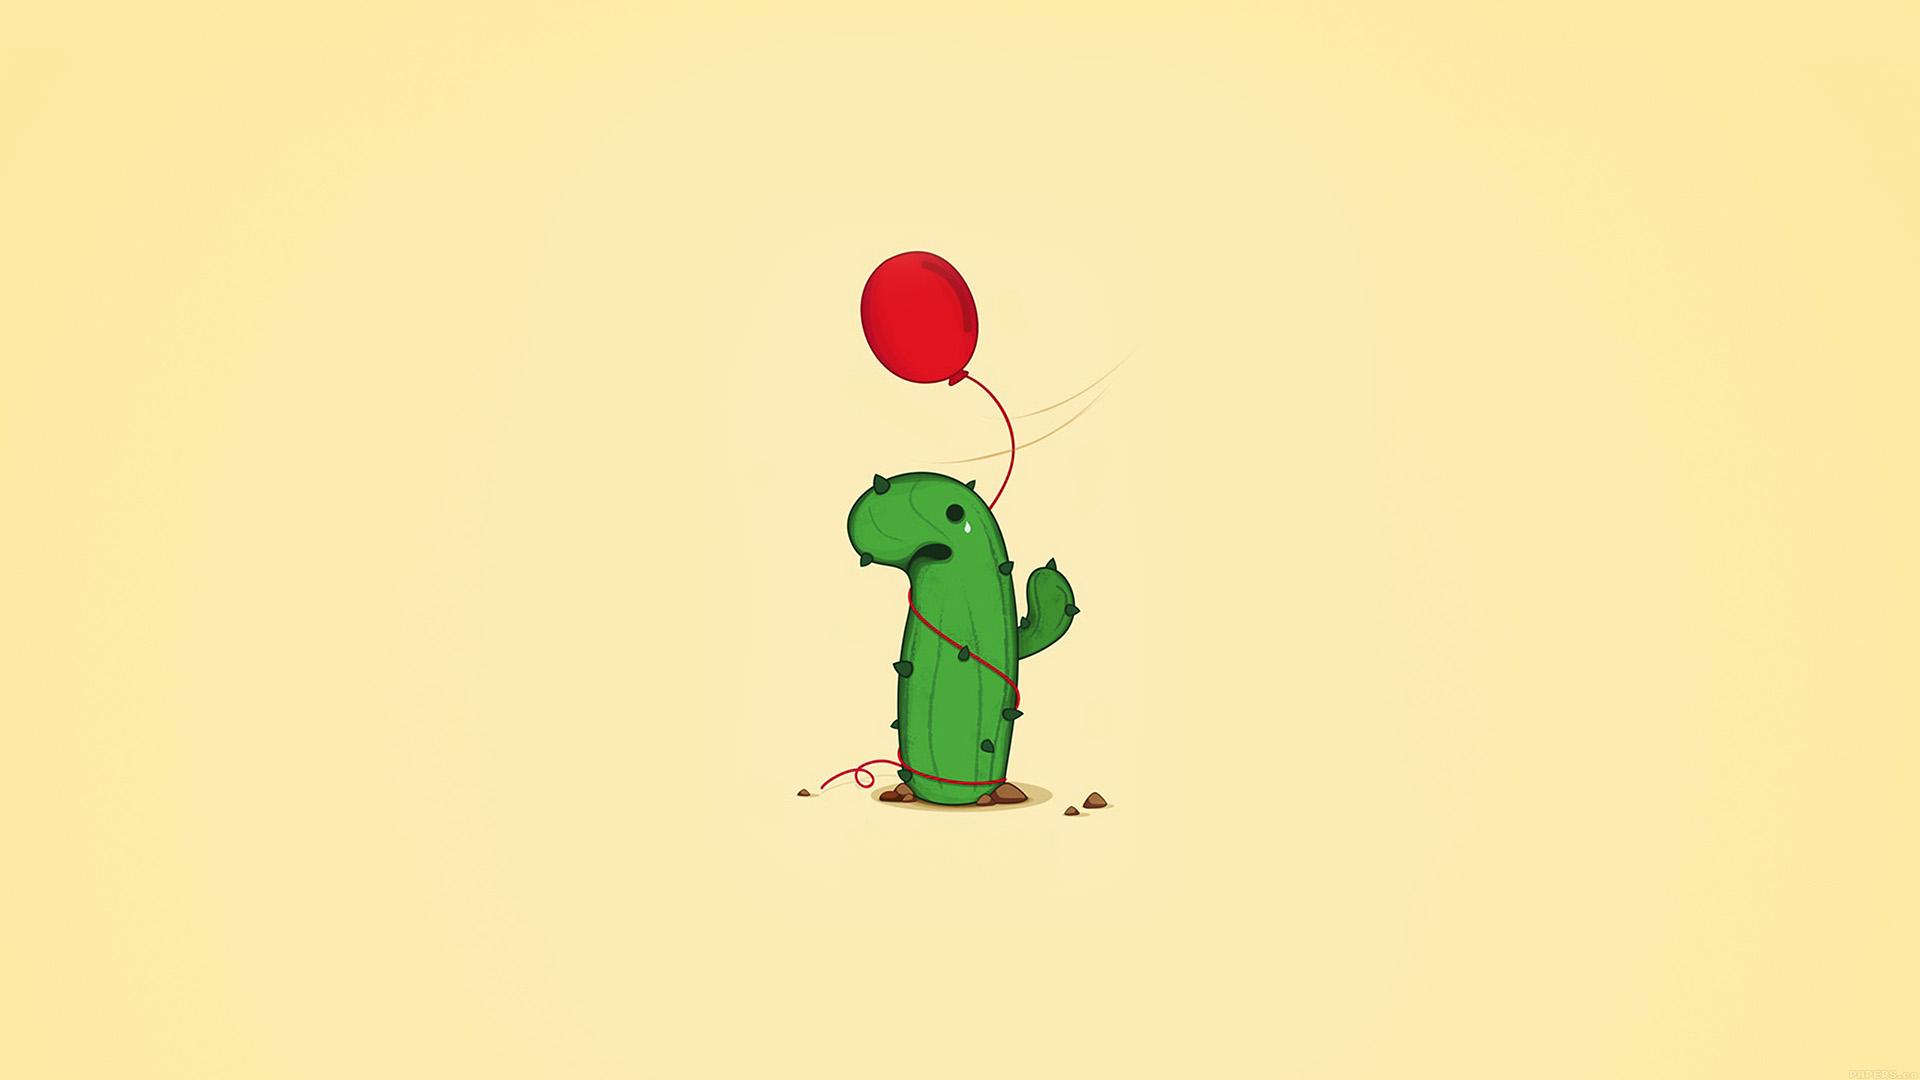 Fall And Winter Wallpaper Ai35 Cute Cactus Ballon Illust Art Minimal Papers Co